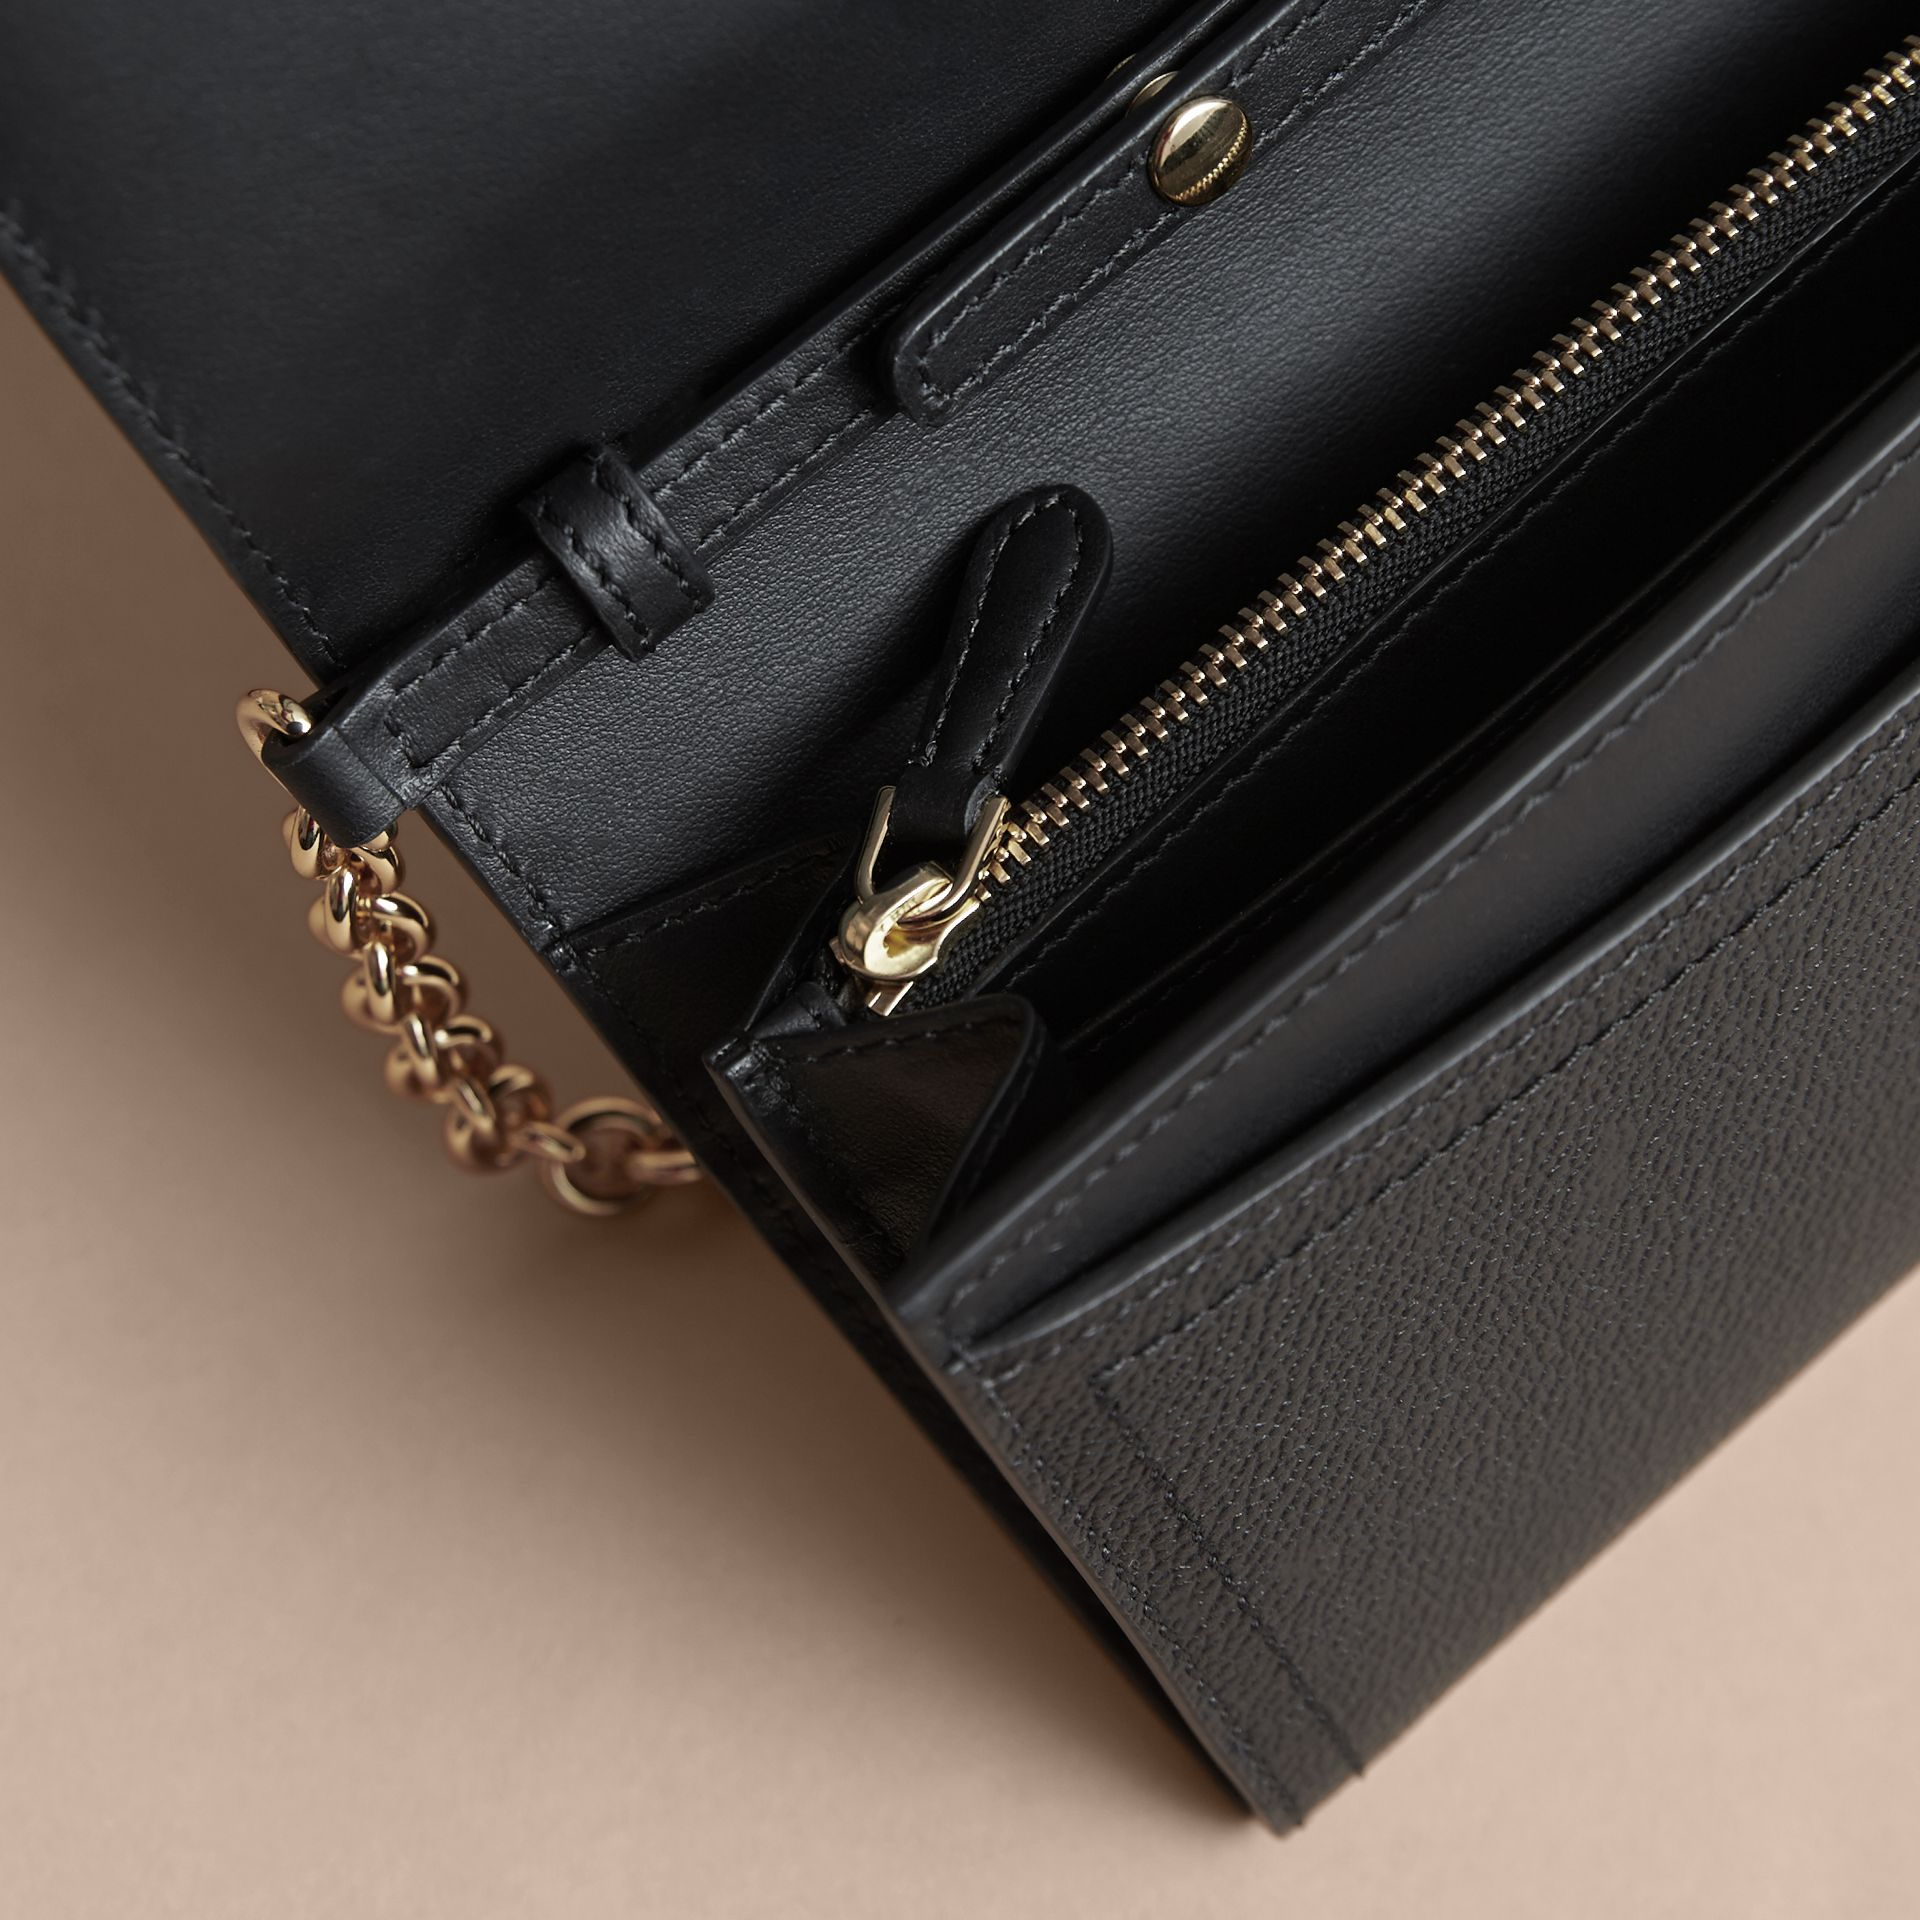 Leather Wallet with Chain in Black - Women | Burberry Australia - gallery image 6